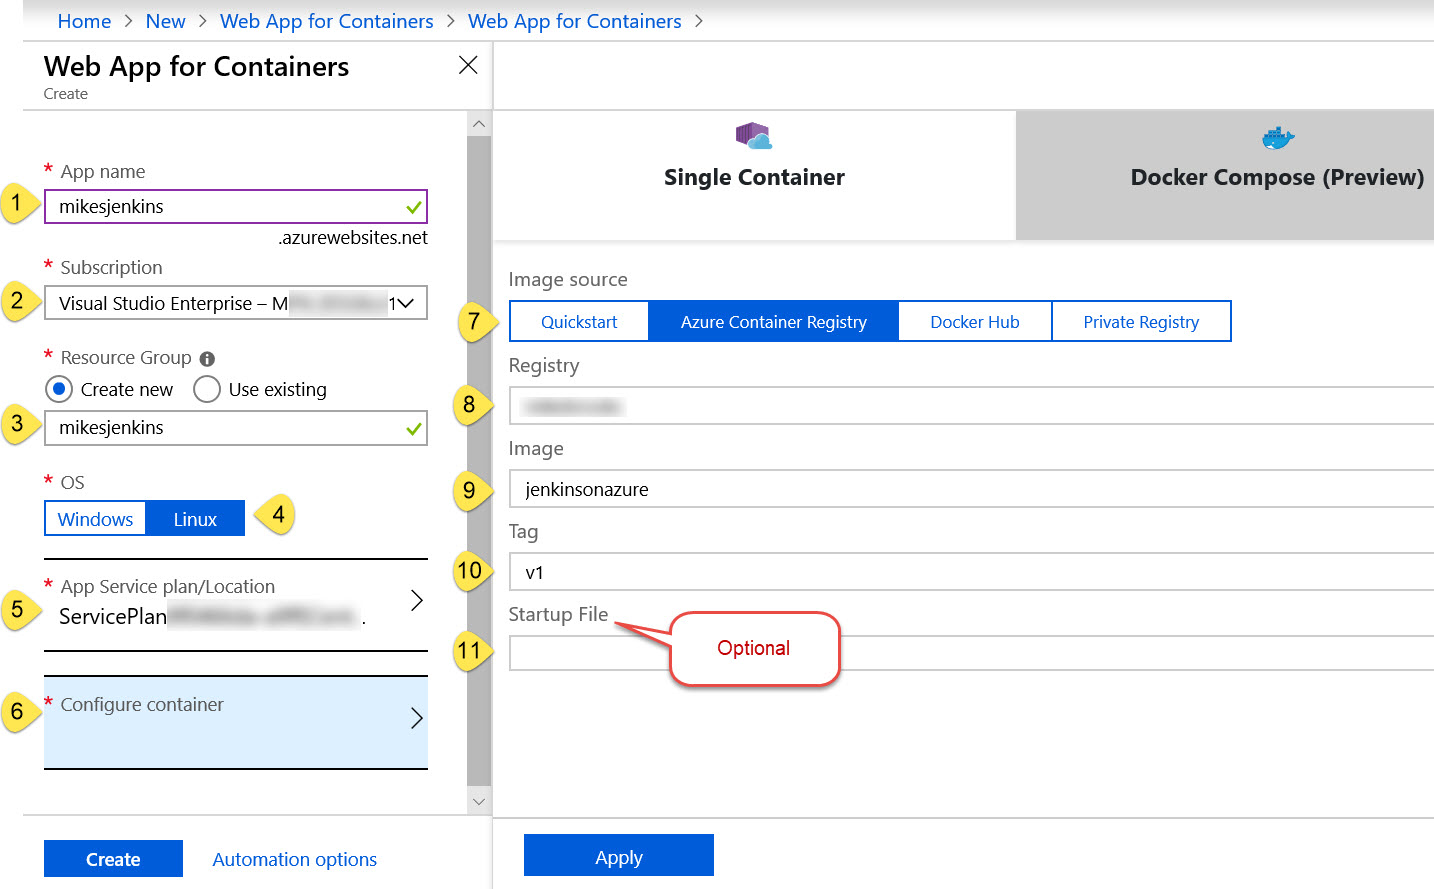 Web App for Containers parameter entry blade in Azure Portal.